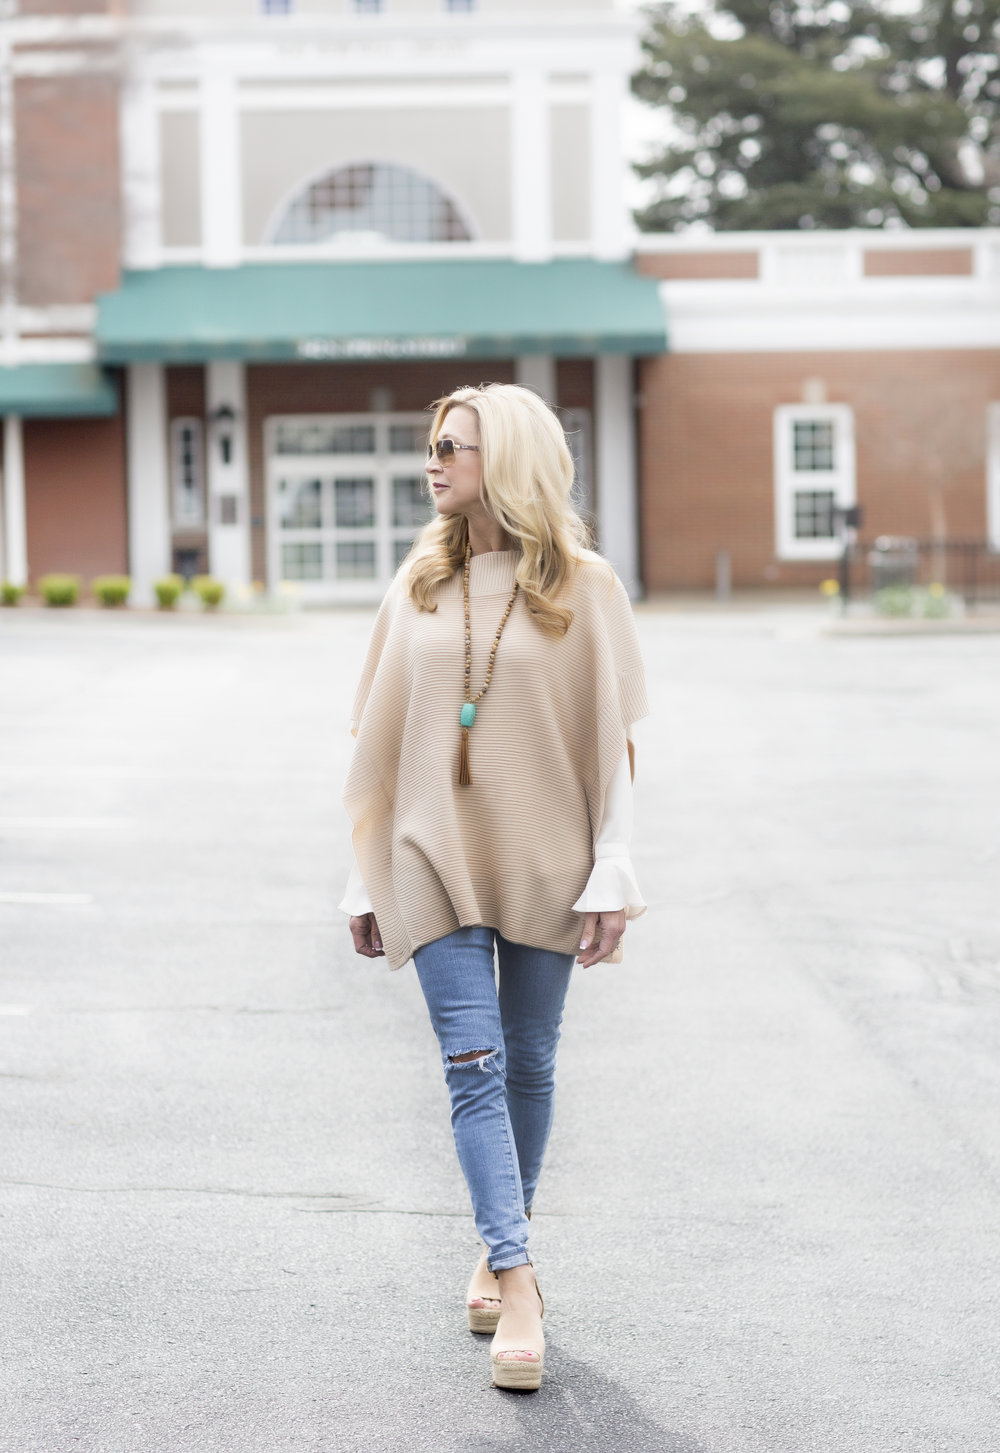 tunic sweater and bell sleeve blouse from Loft